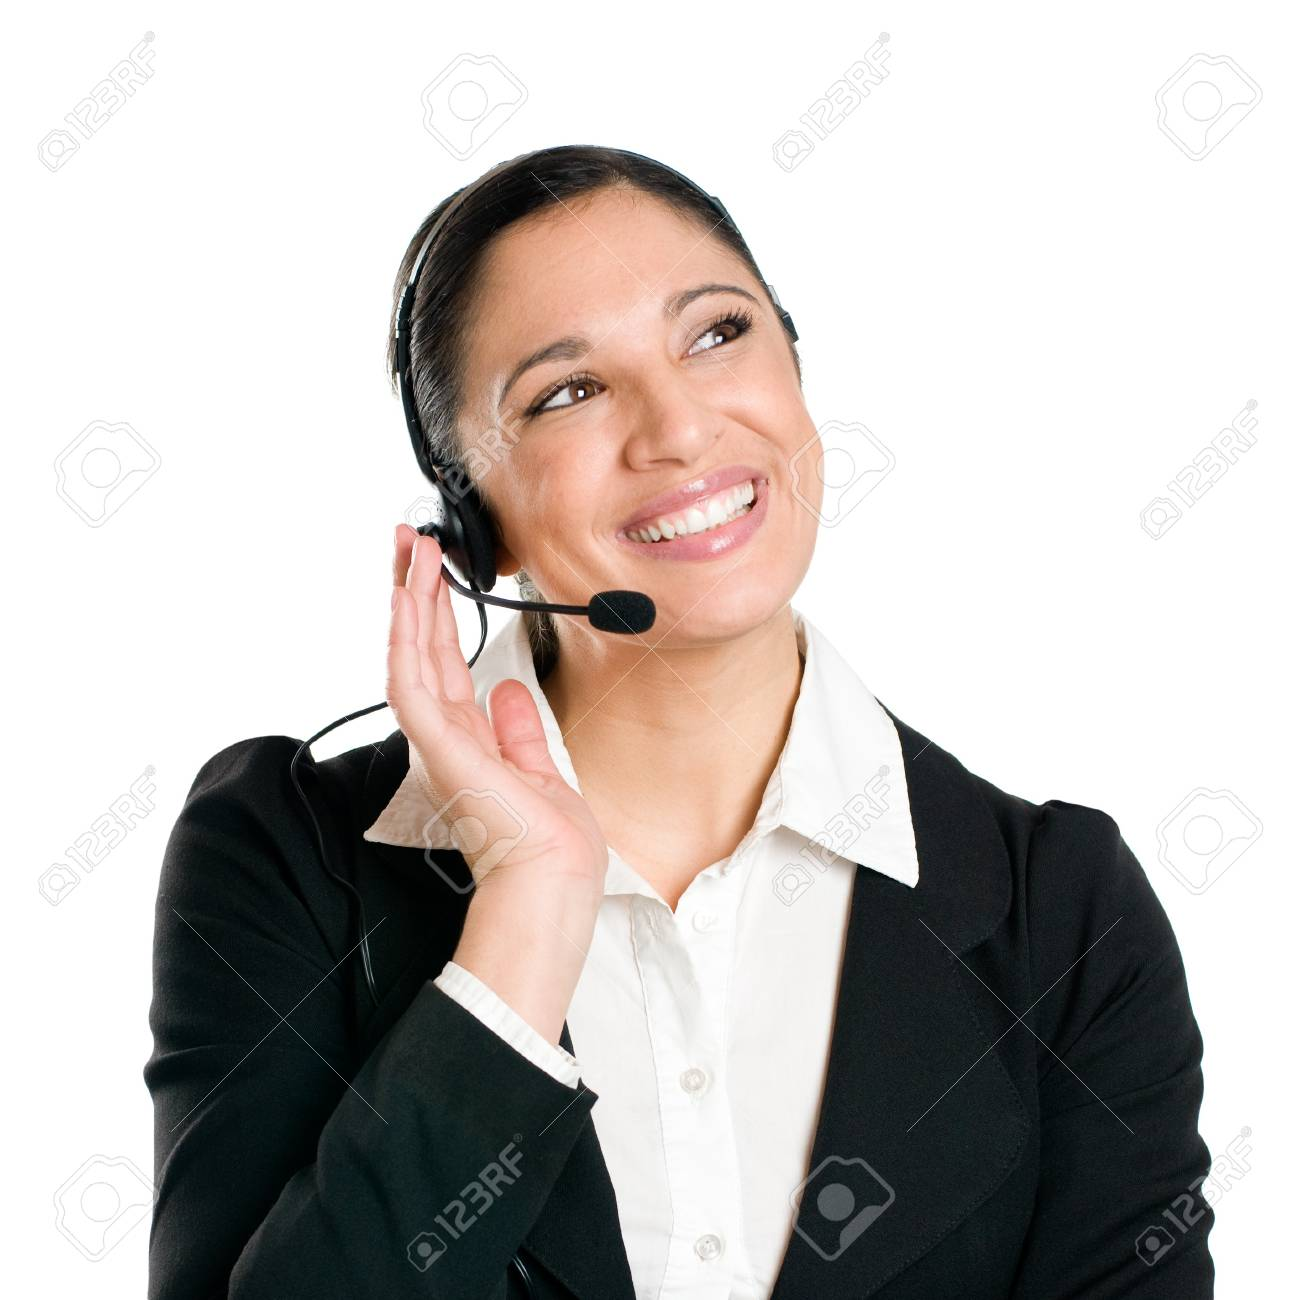 Young woman phone operator with headset at call center isolated on white background Stock Photo - 8234791